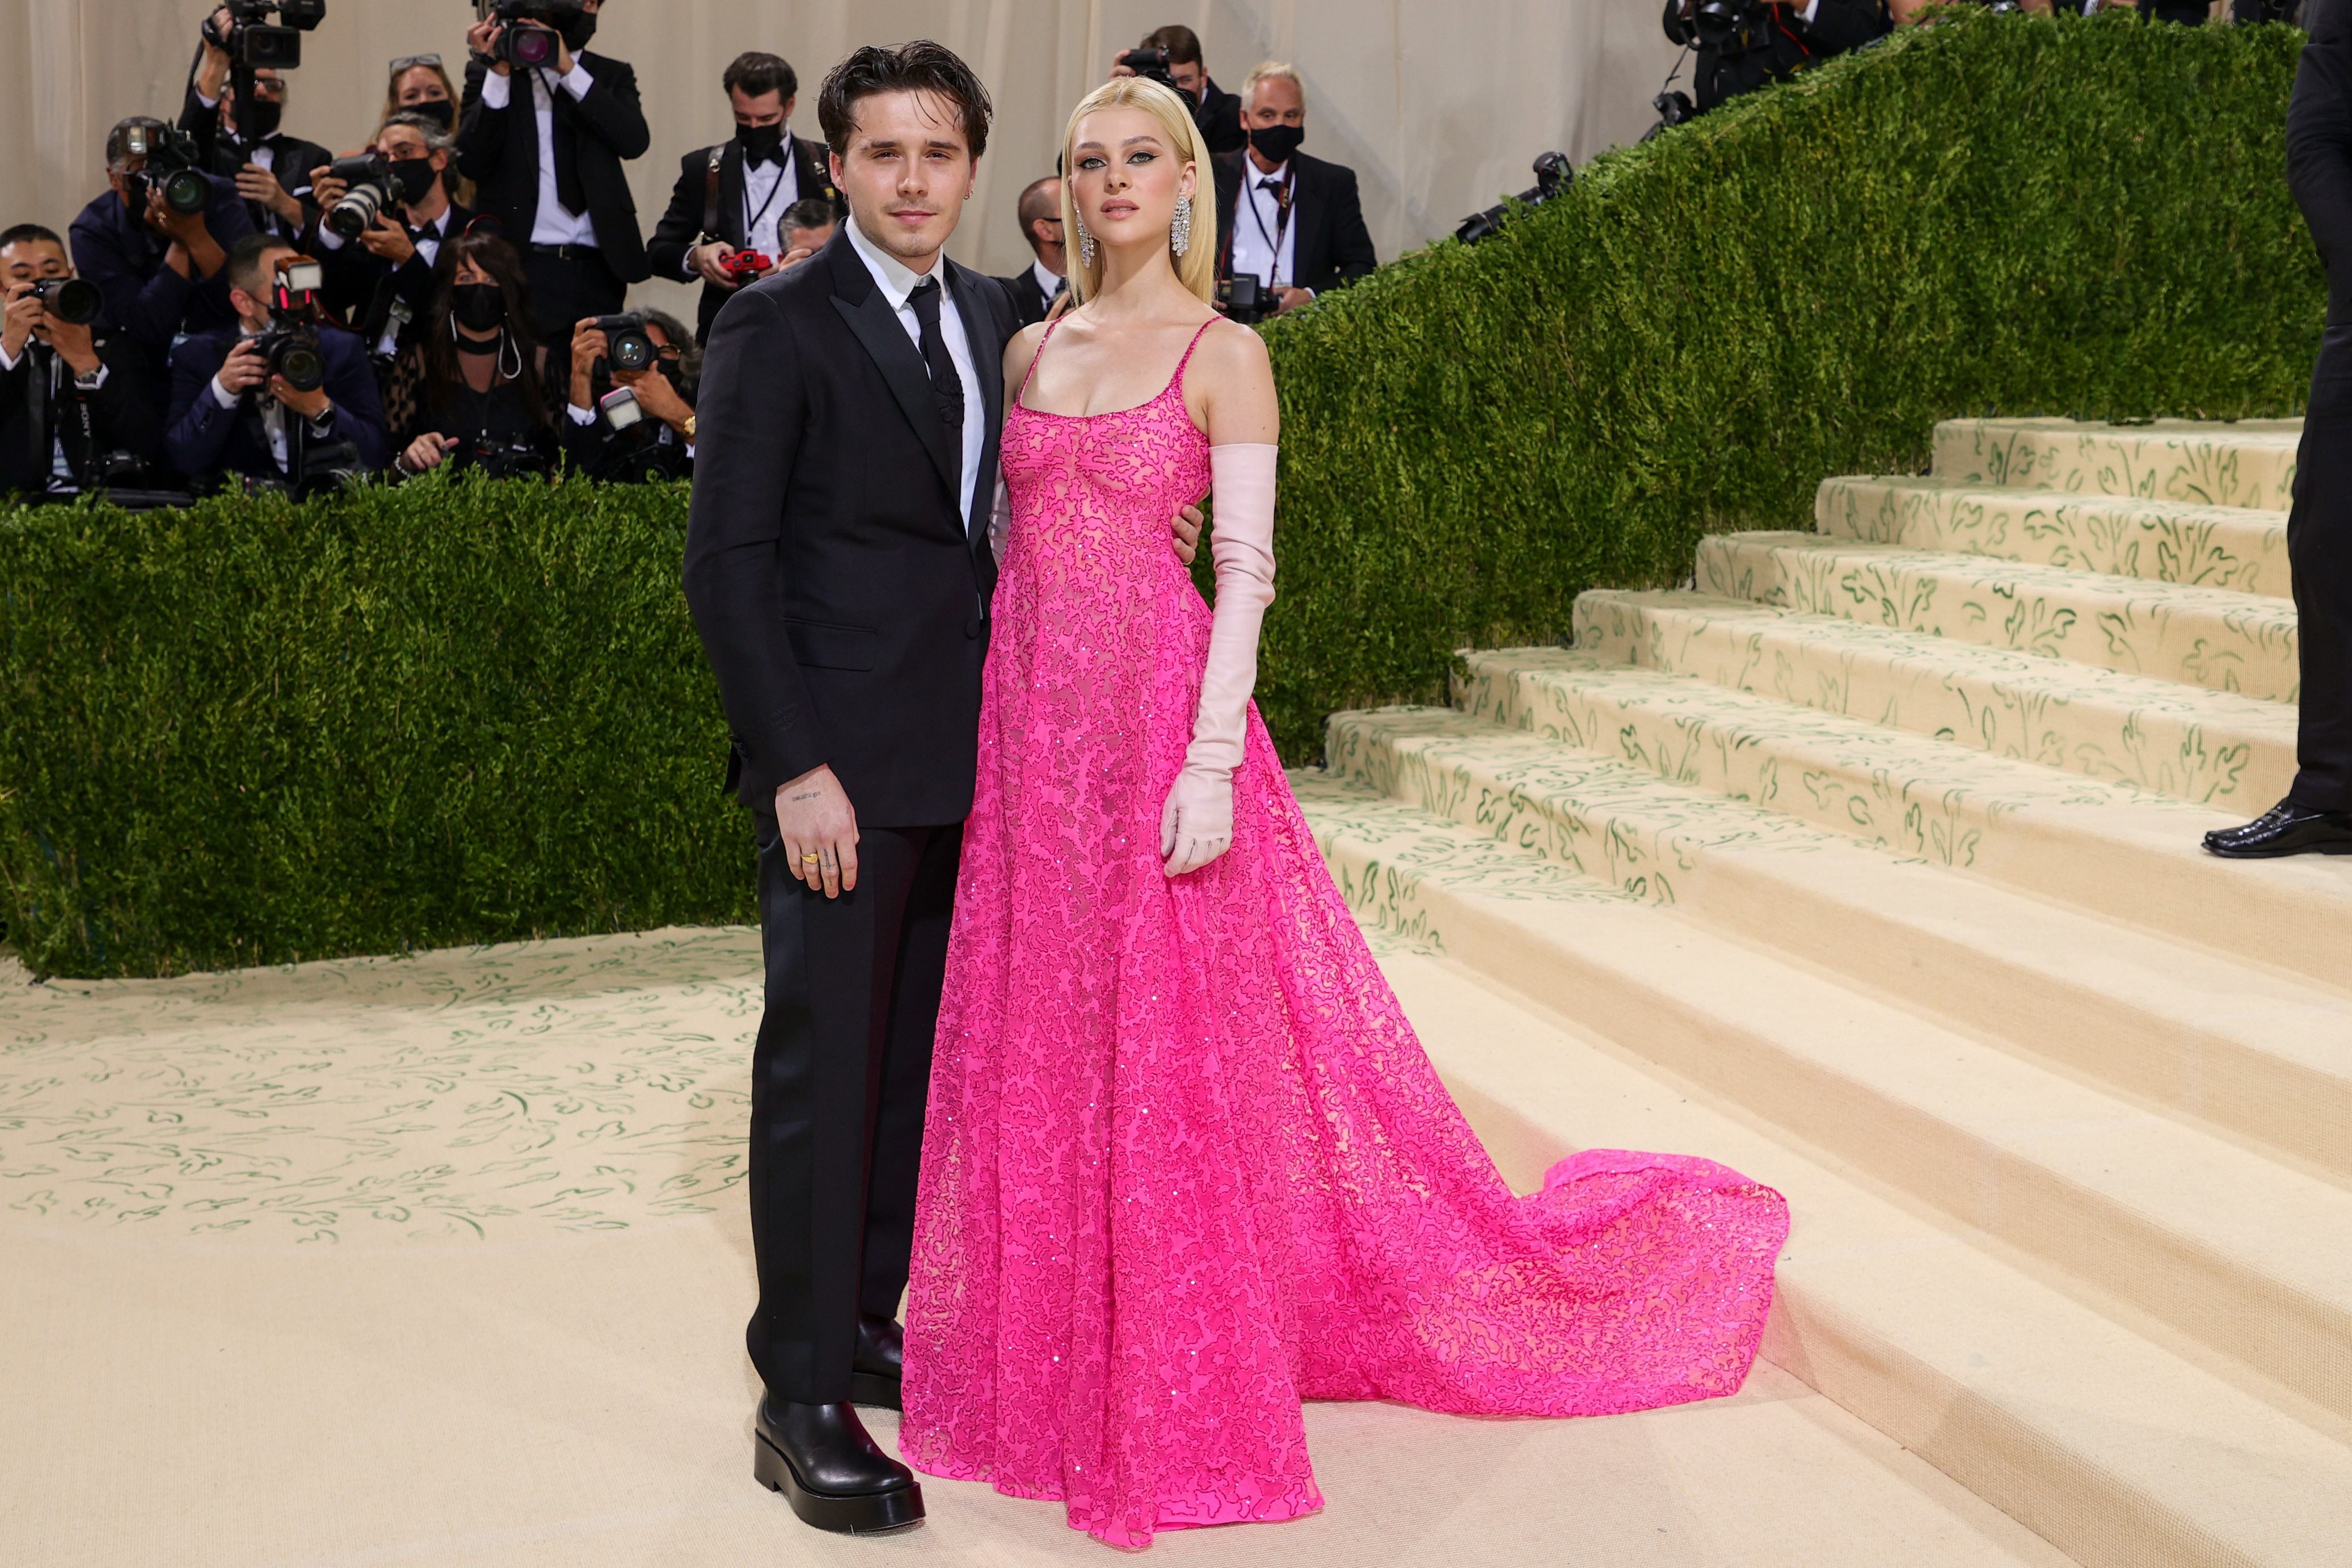 NEW YORK, NEW YORK - SEPTEMBER 13: Brooklyn Beckham and Nicola Peltz attend The 2021 Met Gala Celebrating In America: A Lexicon Of Fashion at Metropolitan Museum of Art on September 13, 2021 in New York City. (Photo by Theo Wargo/Getty Images) (Foto: Getty Images)